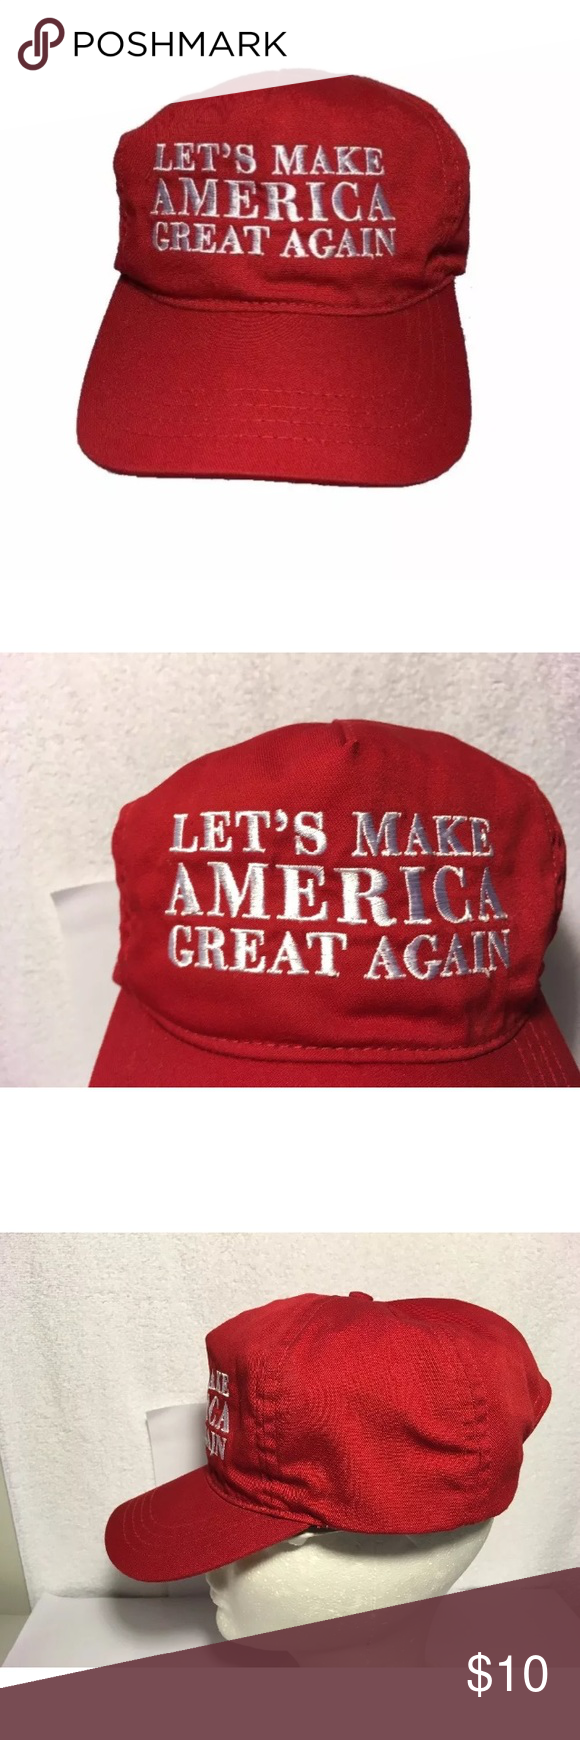 Trump Lets Make America Great Again Hat Usa Made How To Make Things To Sell Let It Be